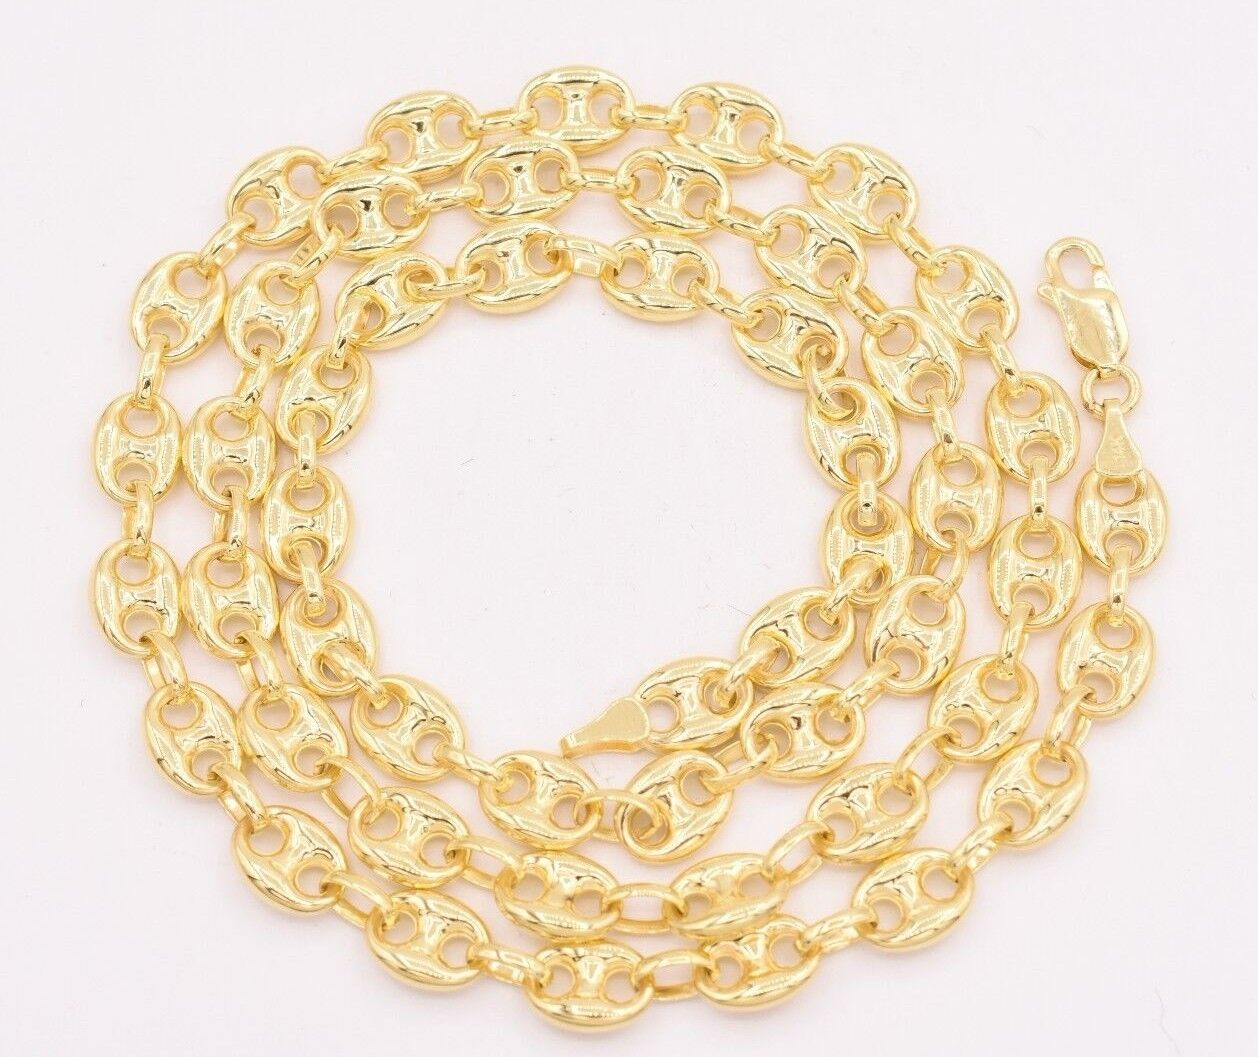 The Mens Jewelry Store Unisex Jewelry 14k Yellow Gold 2.4mm Wheat Chain Extender or Safety Chain